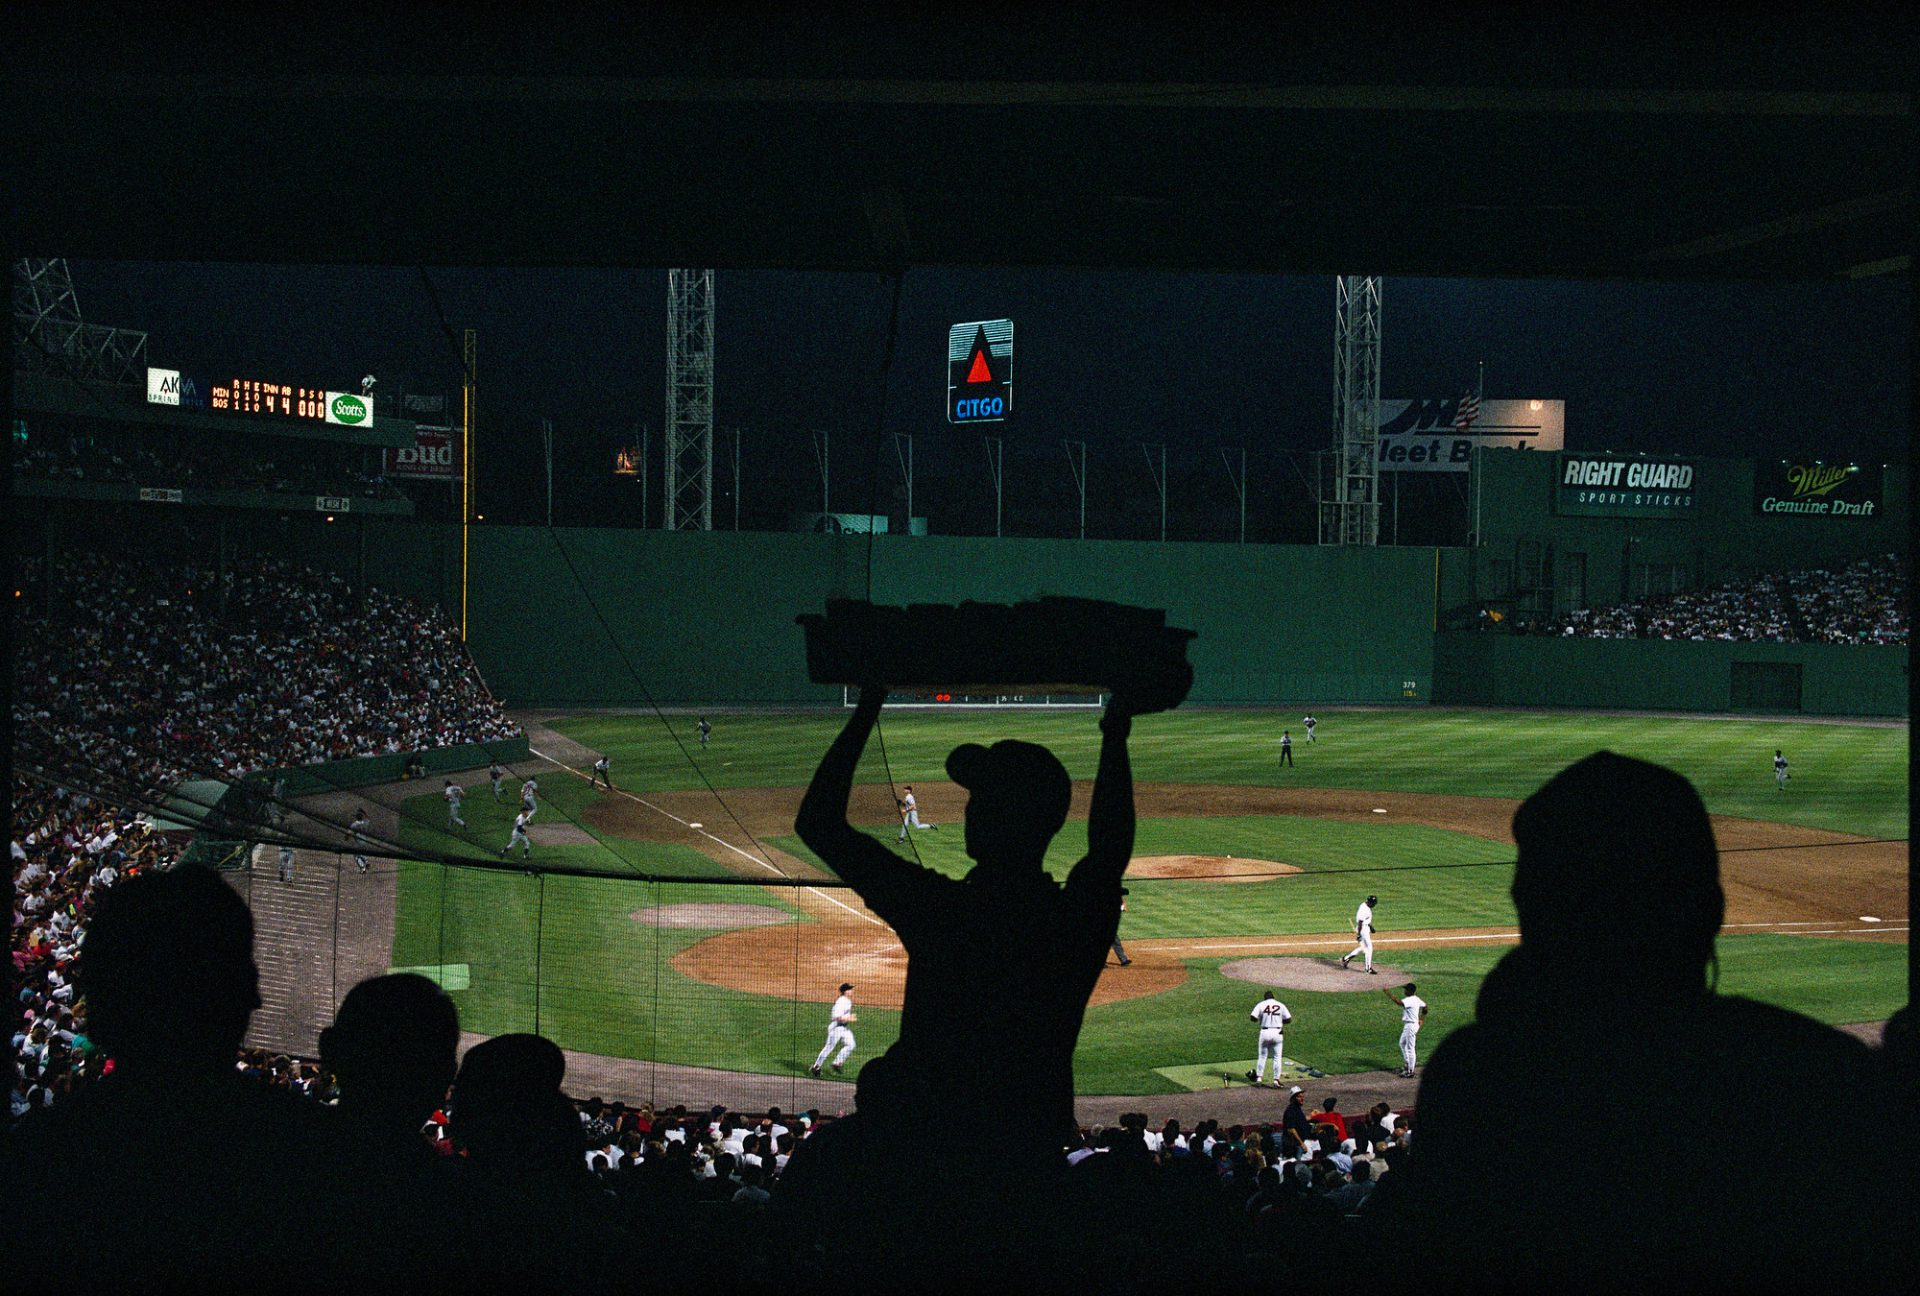 Photo: Fenway stadium during a night baseball game showing fans and players in Boston, Massachusetts.